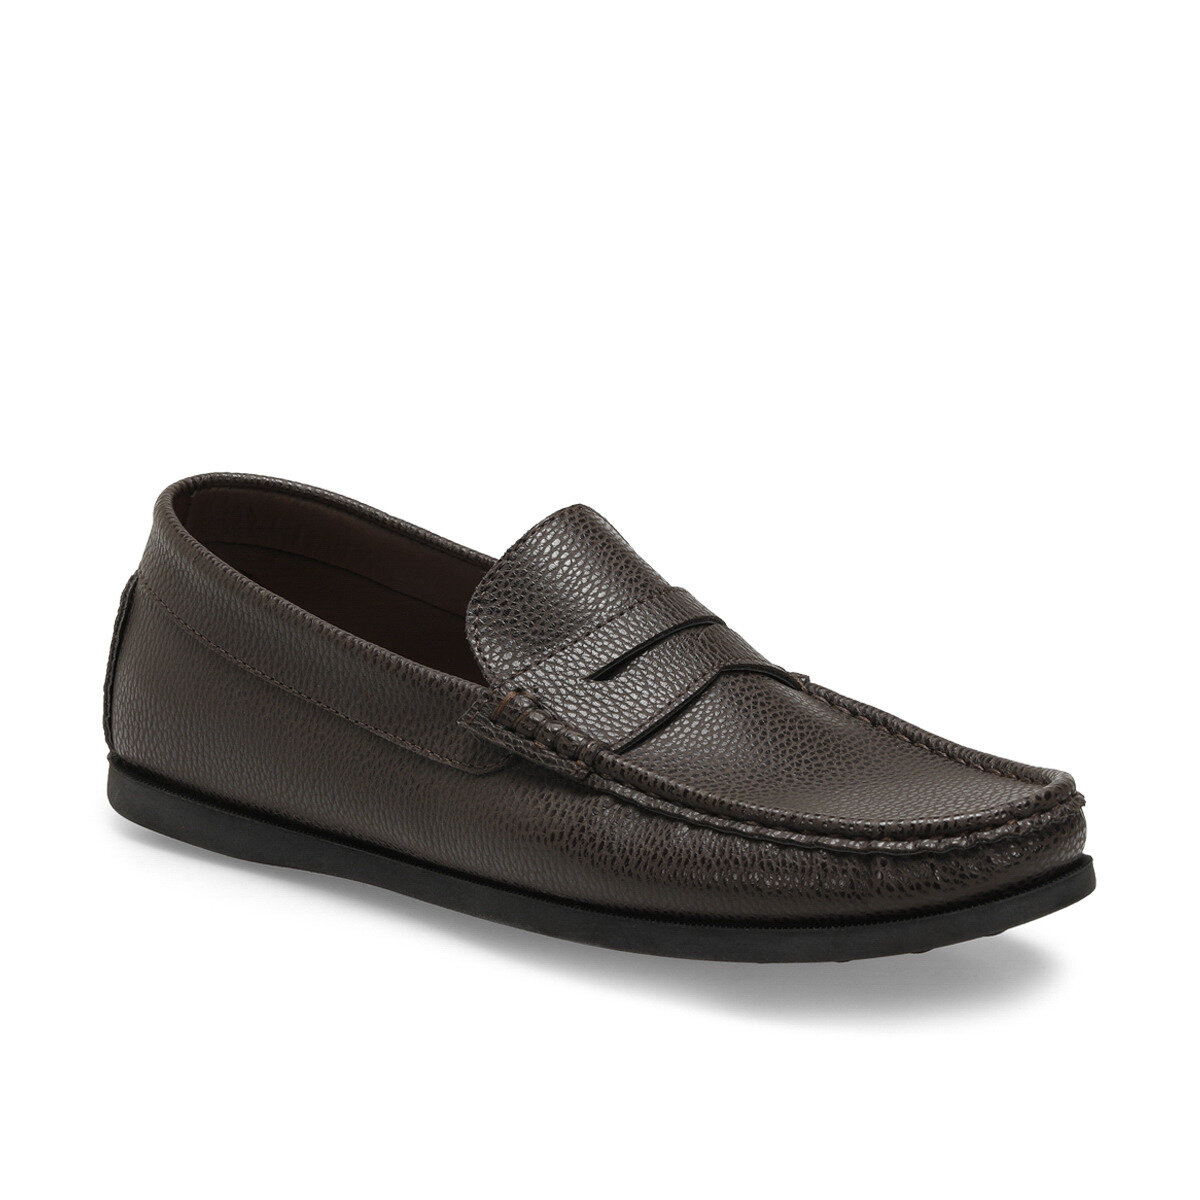 FLO 171 C Brown Men 'S Classic Shoes Flexall